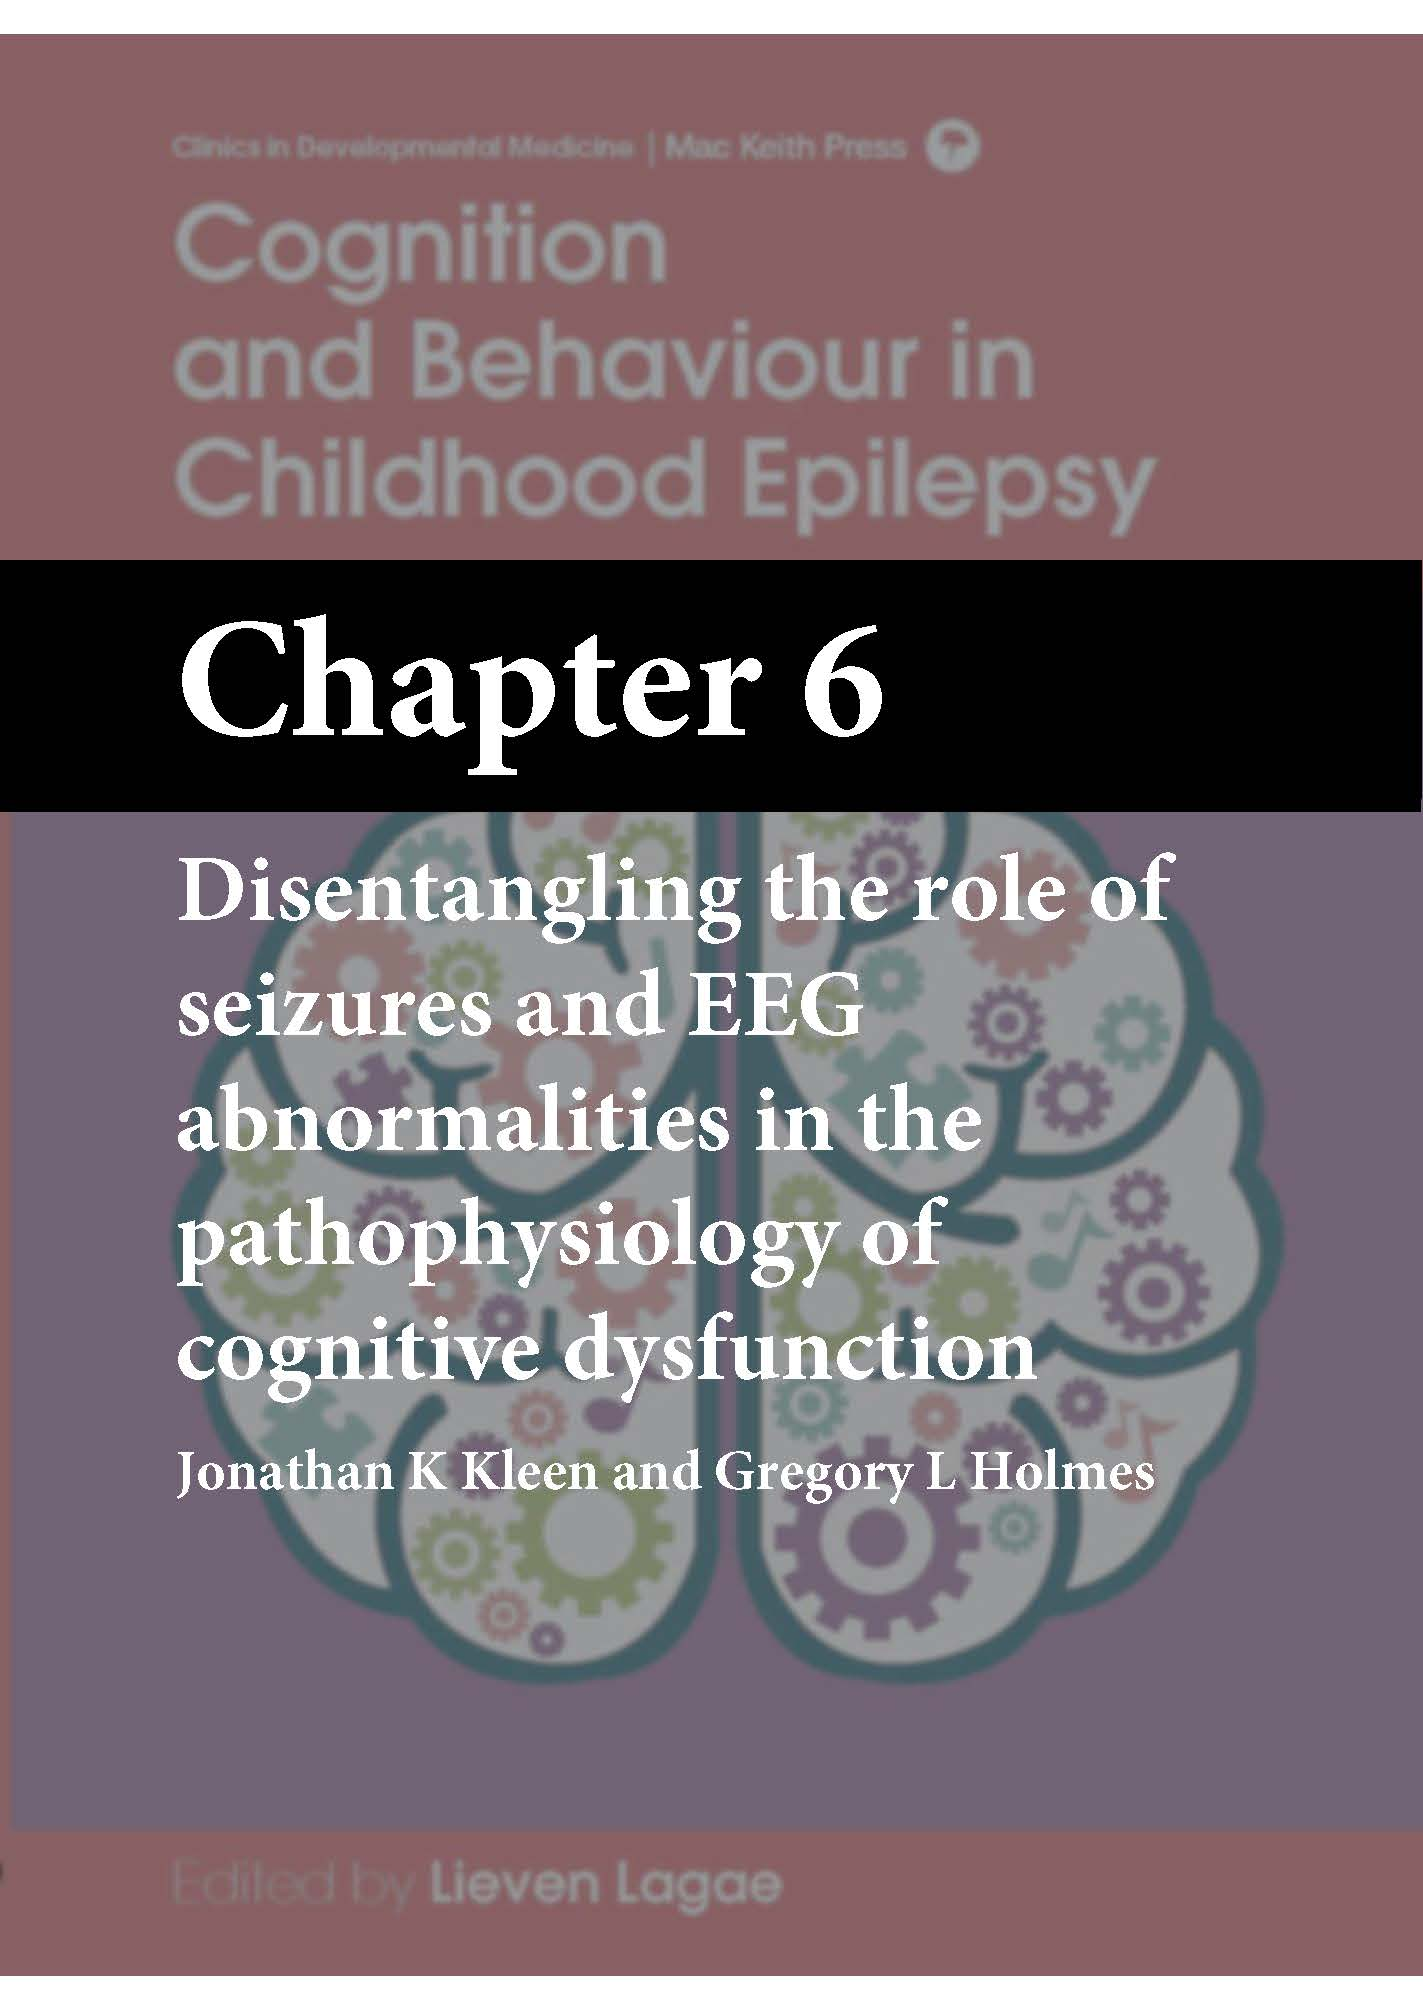 Cognition and Behaviour in Childhood Epilepsy, Lagae, Chapter 6 cover